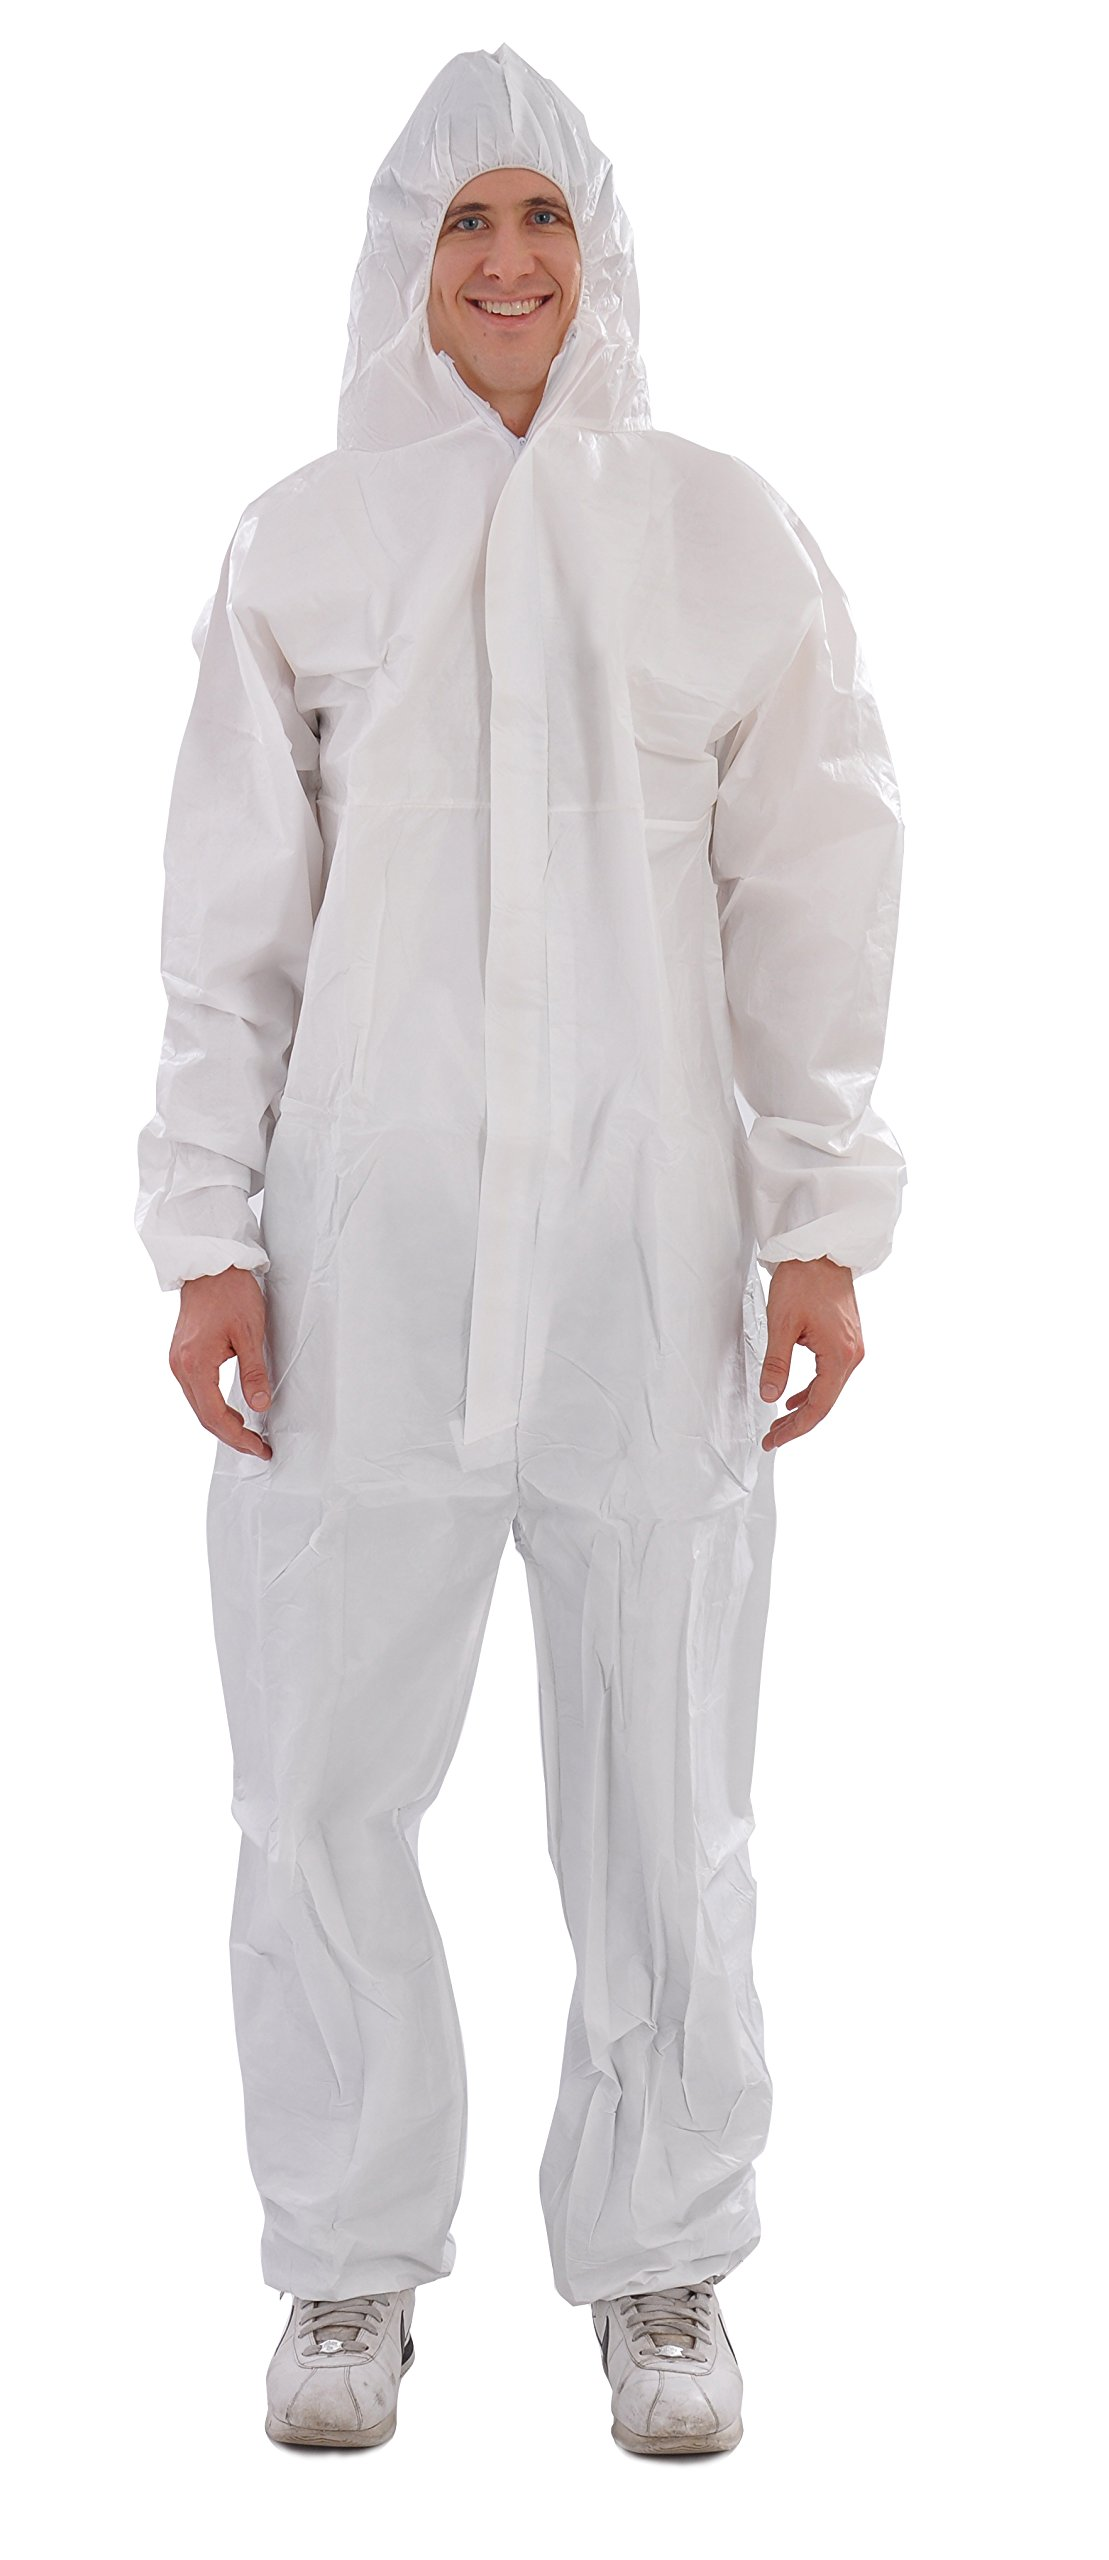 Raygard 30203 Microporous Disposable Coveralls Protective Breathable Hooded Suit with Elastic Cuffs, Ankles and Waist,Zip Front Opening, Serged Seams for Spray Paint Chemical Industrial(X-Large,White)